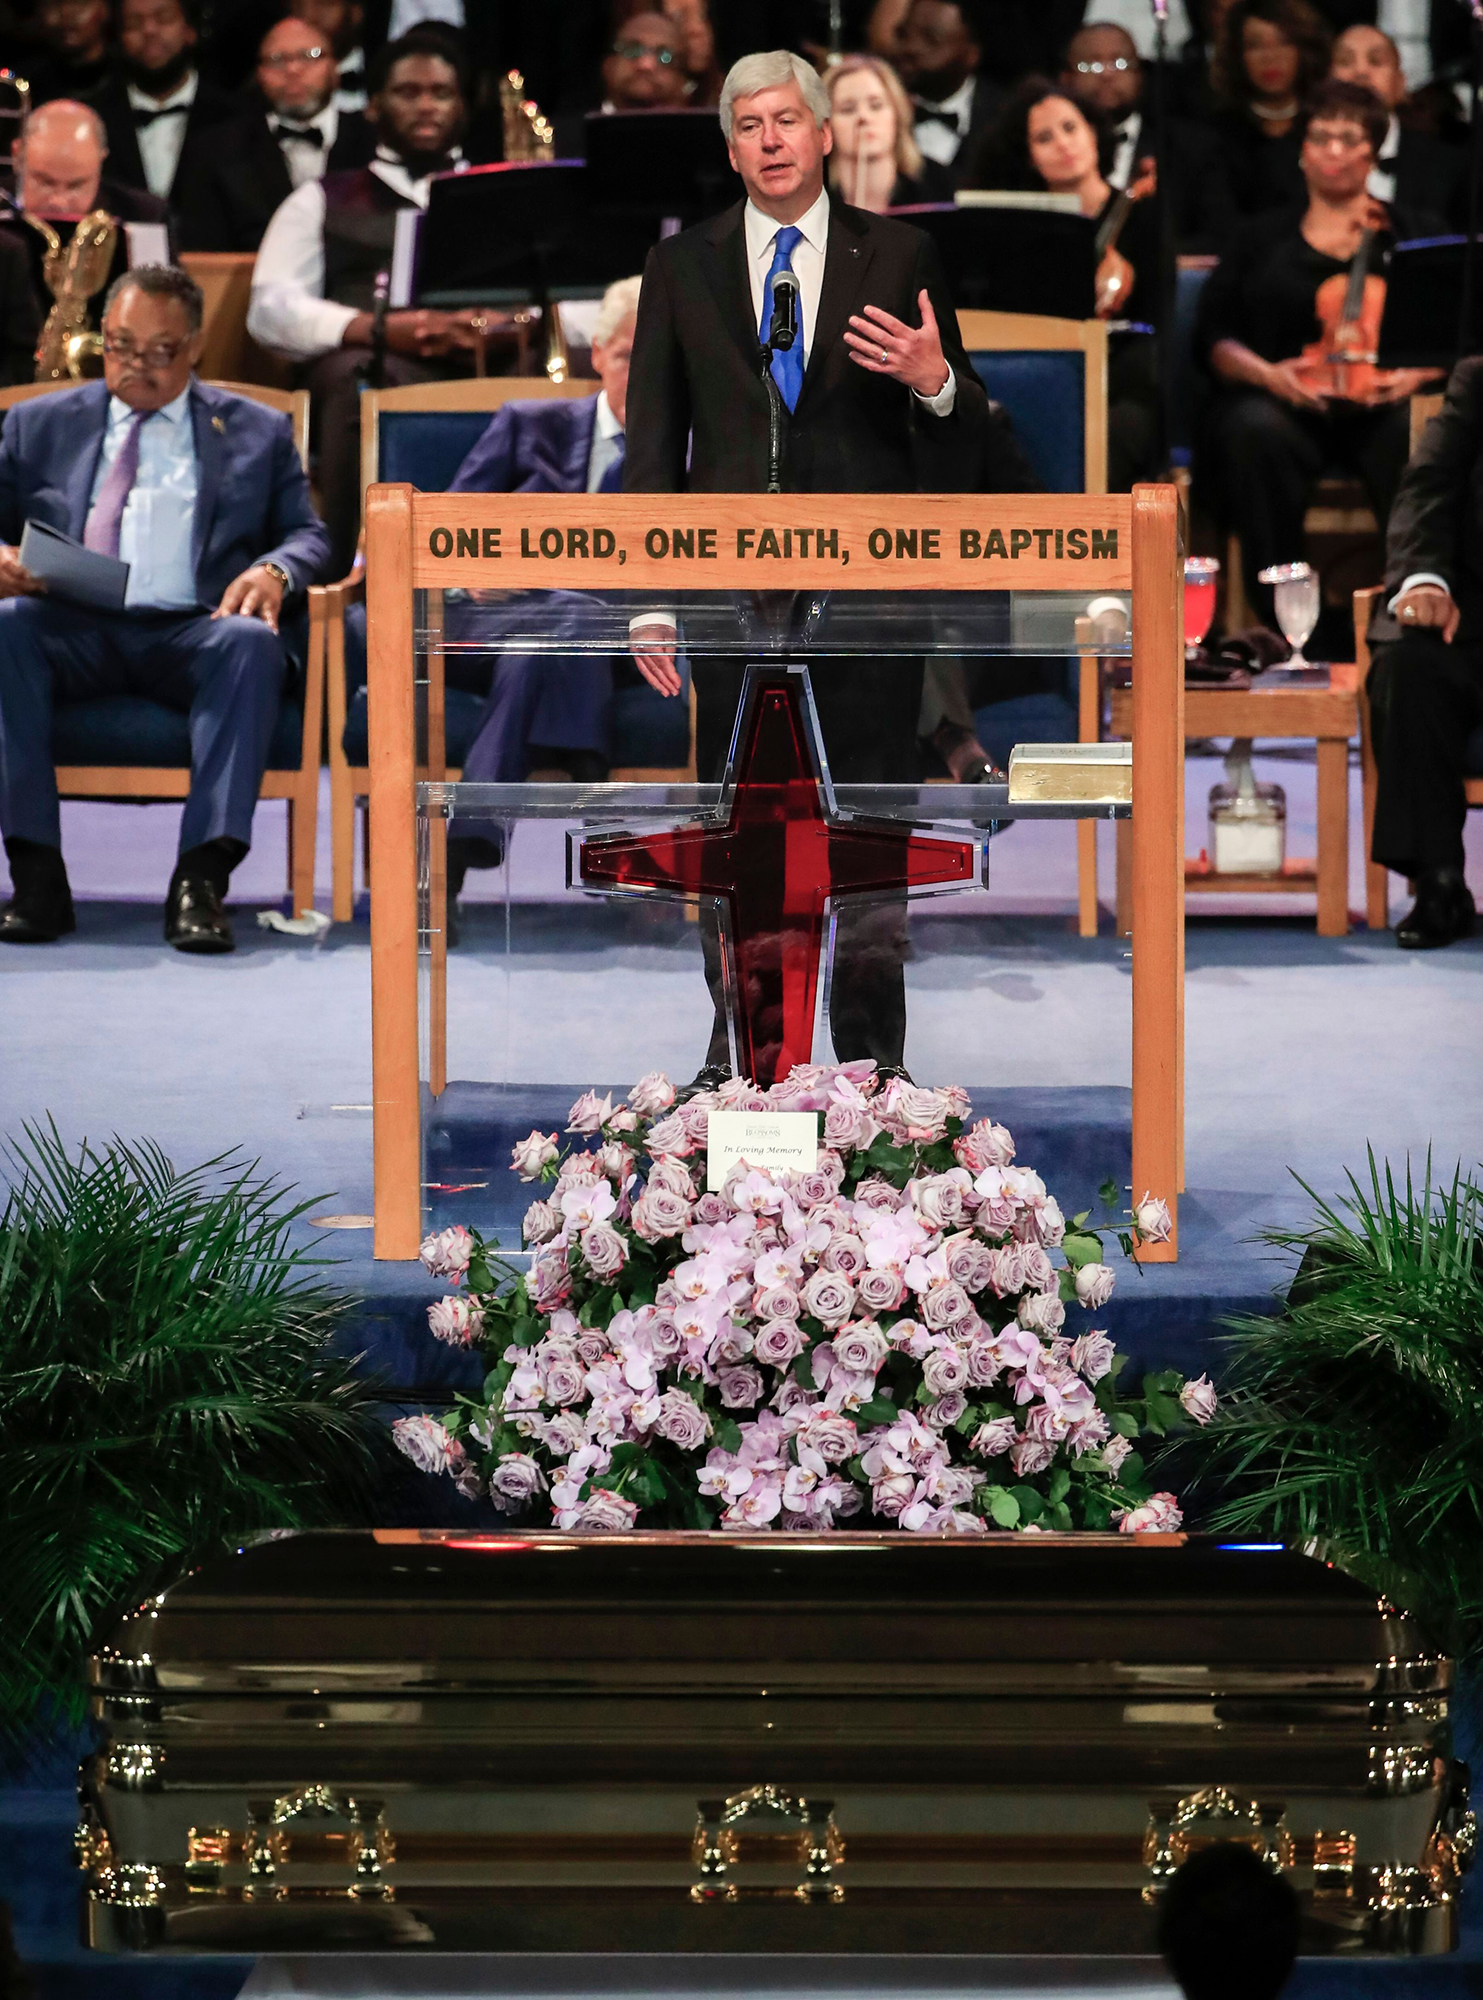 Funeral service for Aretha Franklin, Detroit, USA - 31 Aug 2018